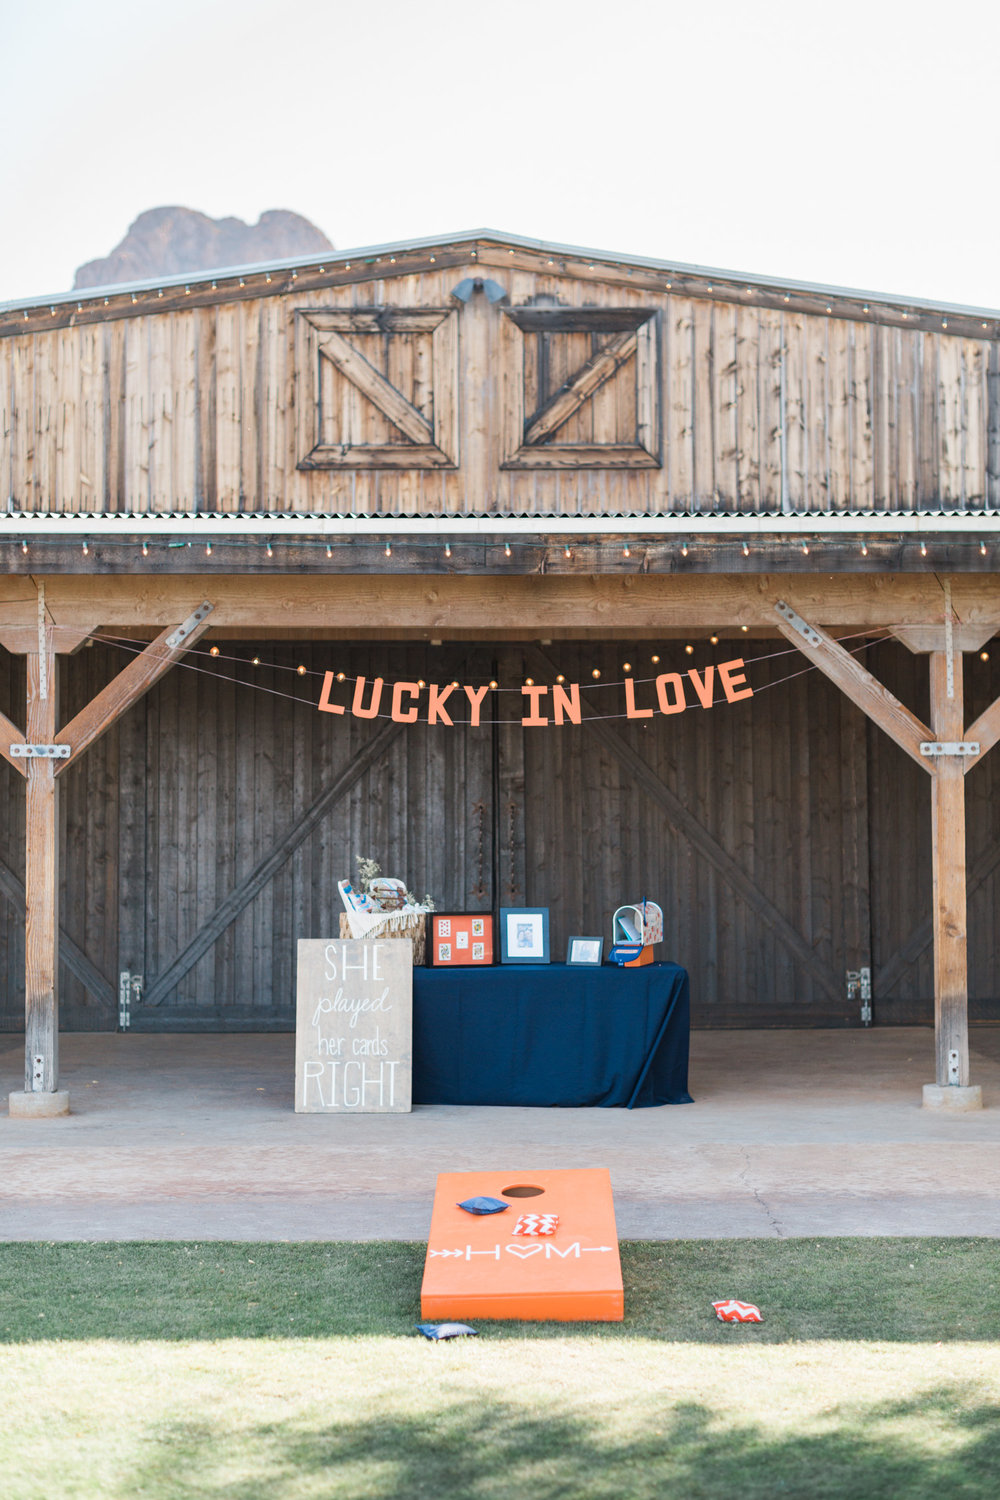 Tucson barn wedding venue, Stardance, all set up for the cocktail hour, complete with custom cornhole game!